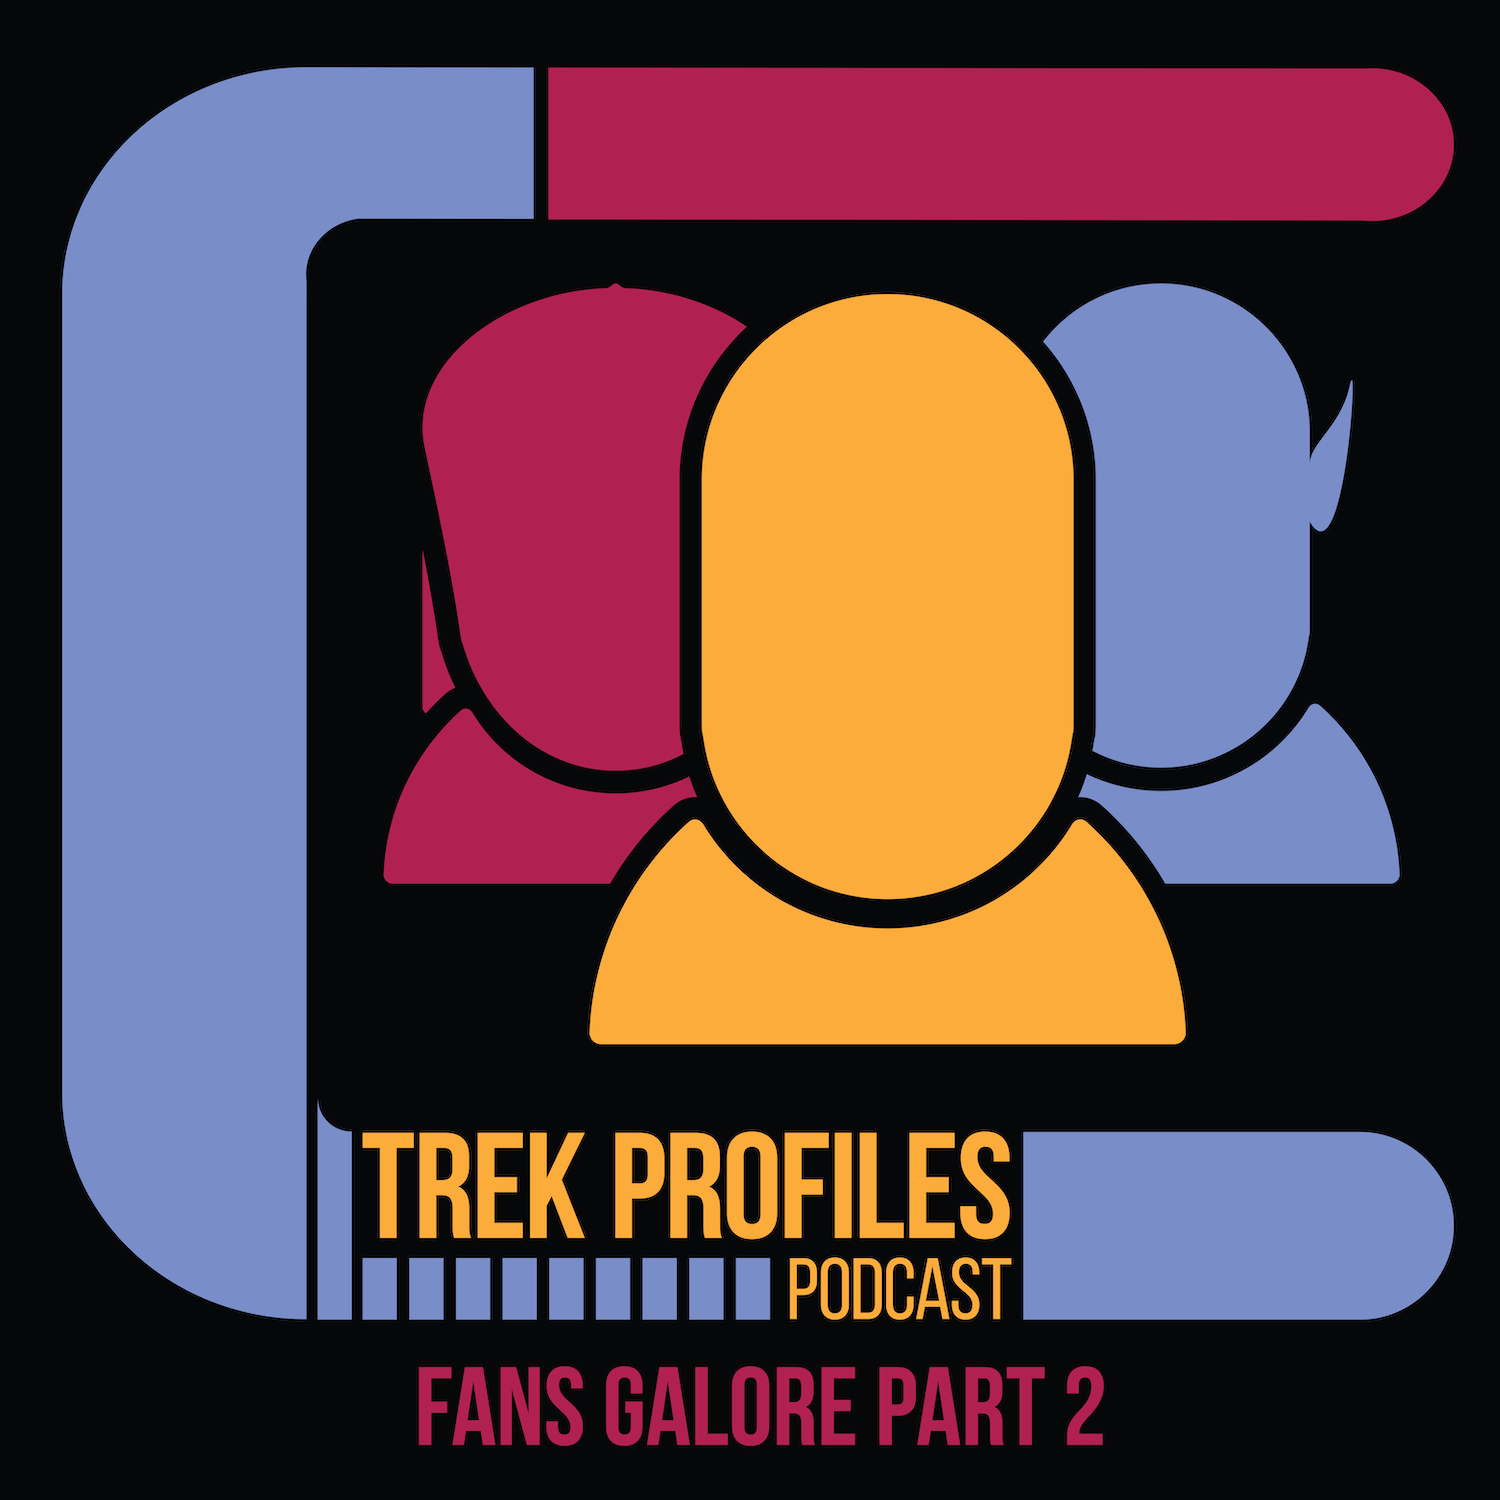 TrekProfiles #14: Fans Galore Part 2